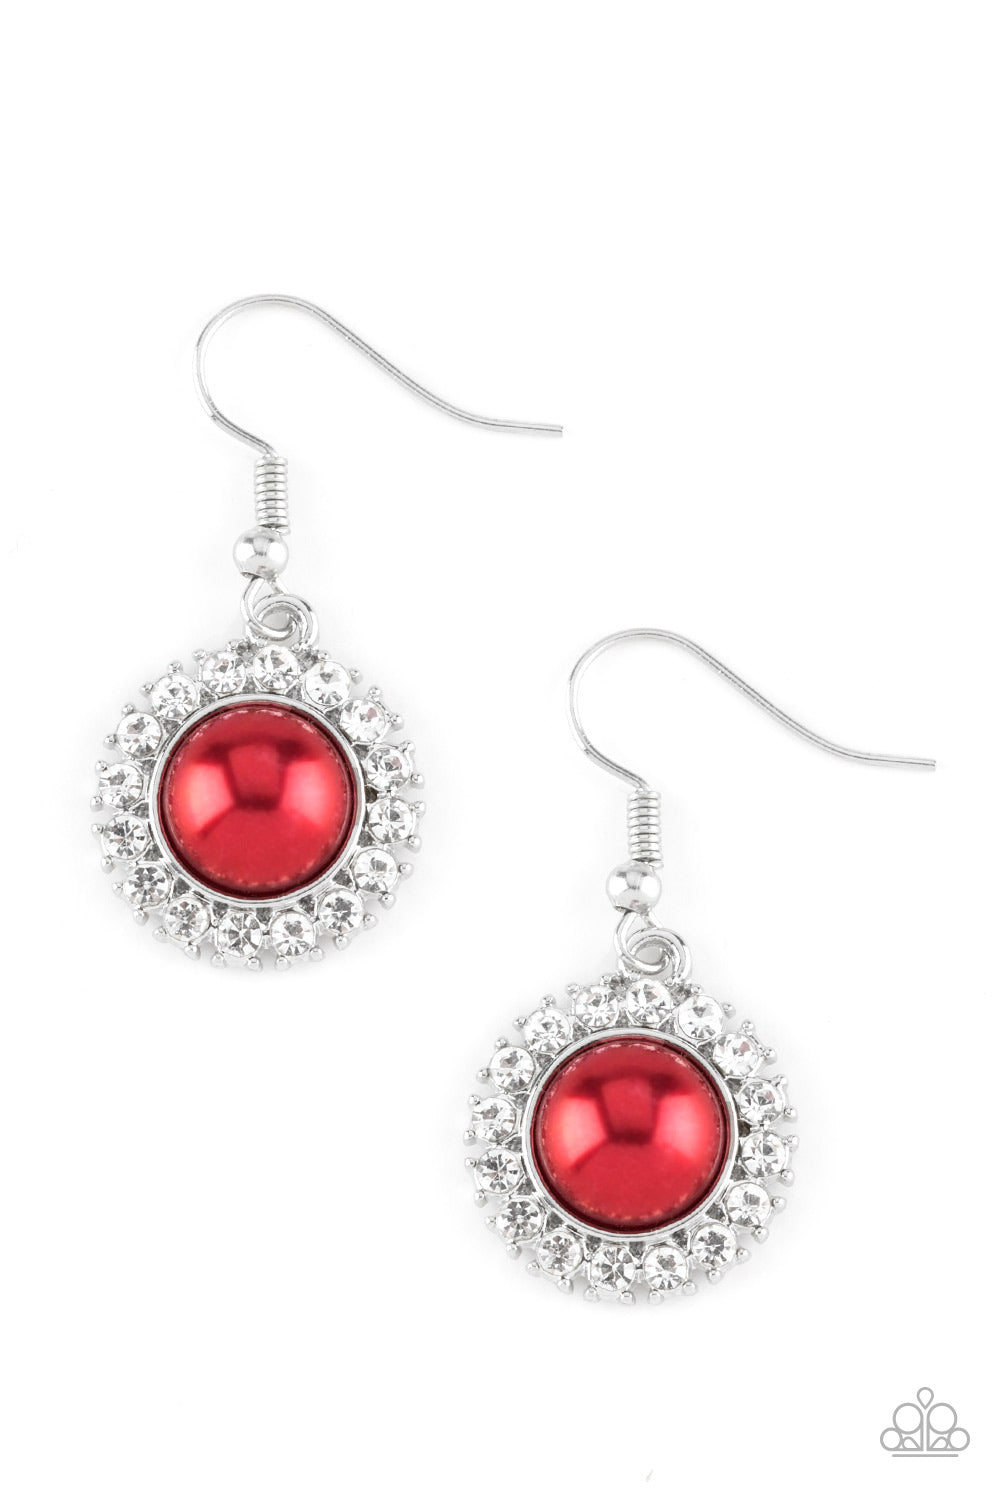 Paparazzi Fashion Show Celebrity - Red Earrings New